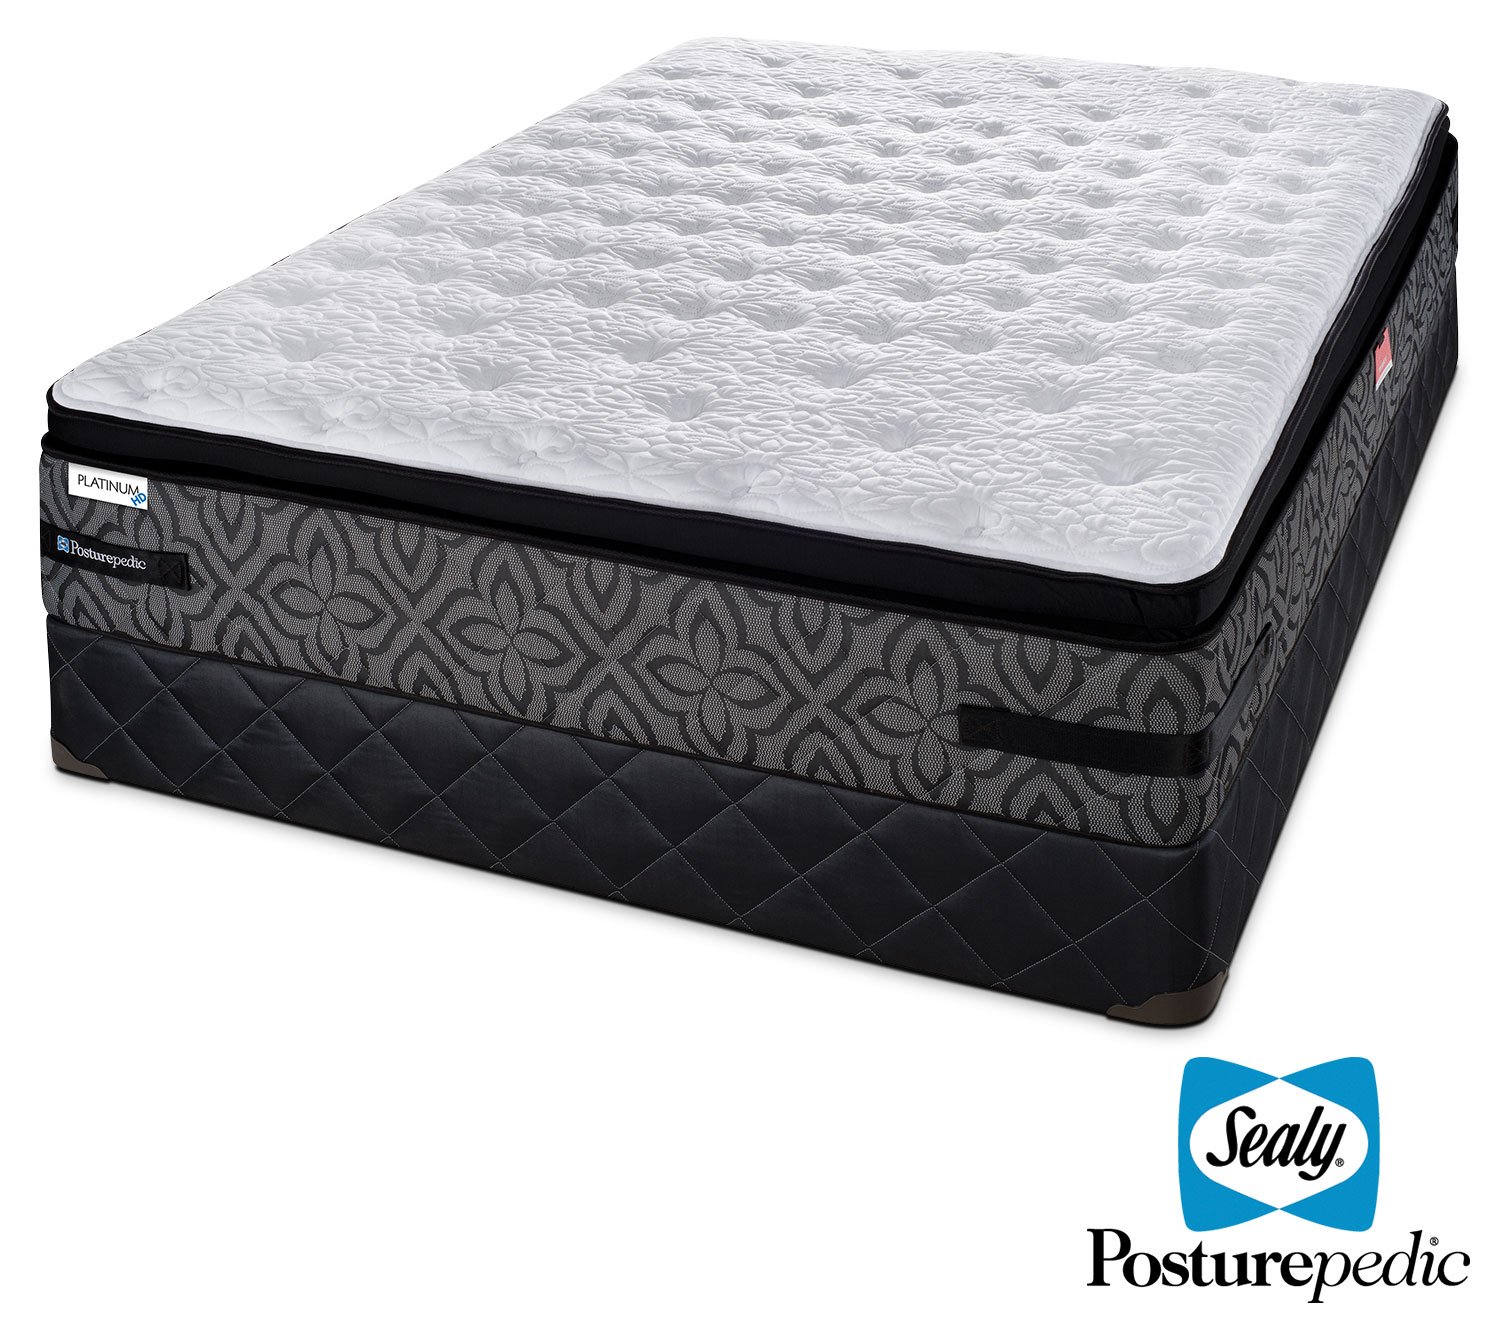 Sealy Posturepedic 2 K Firm Full Mattress And Boxspring